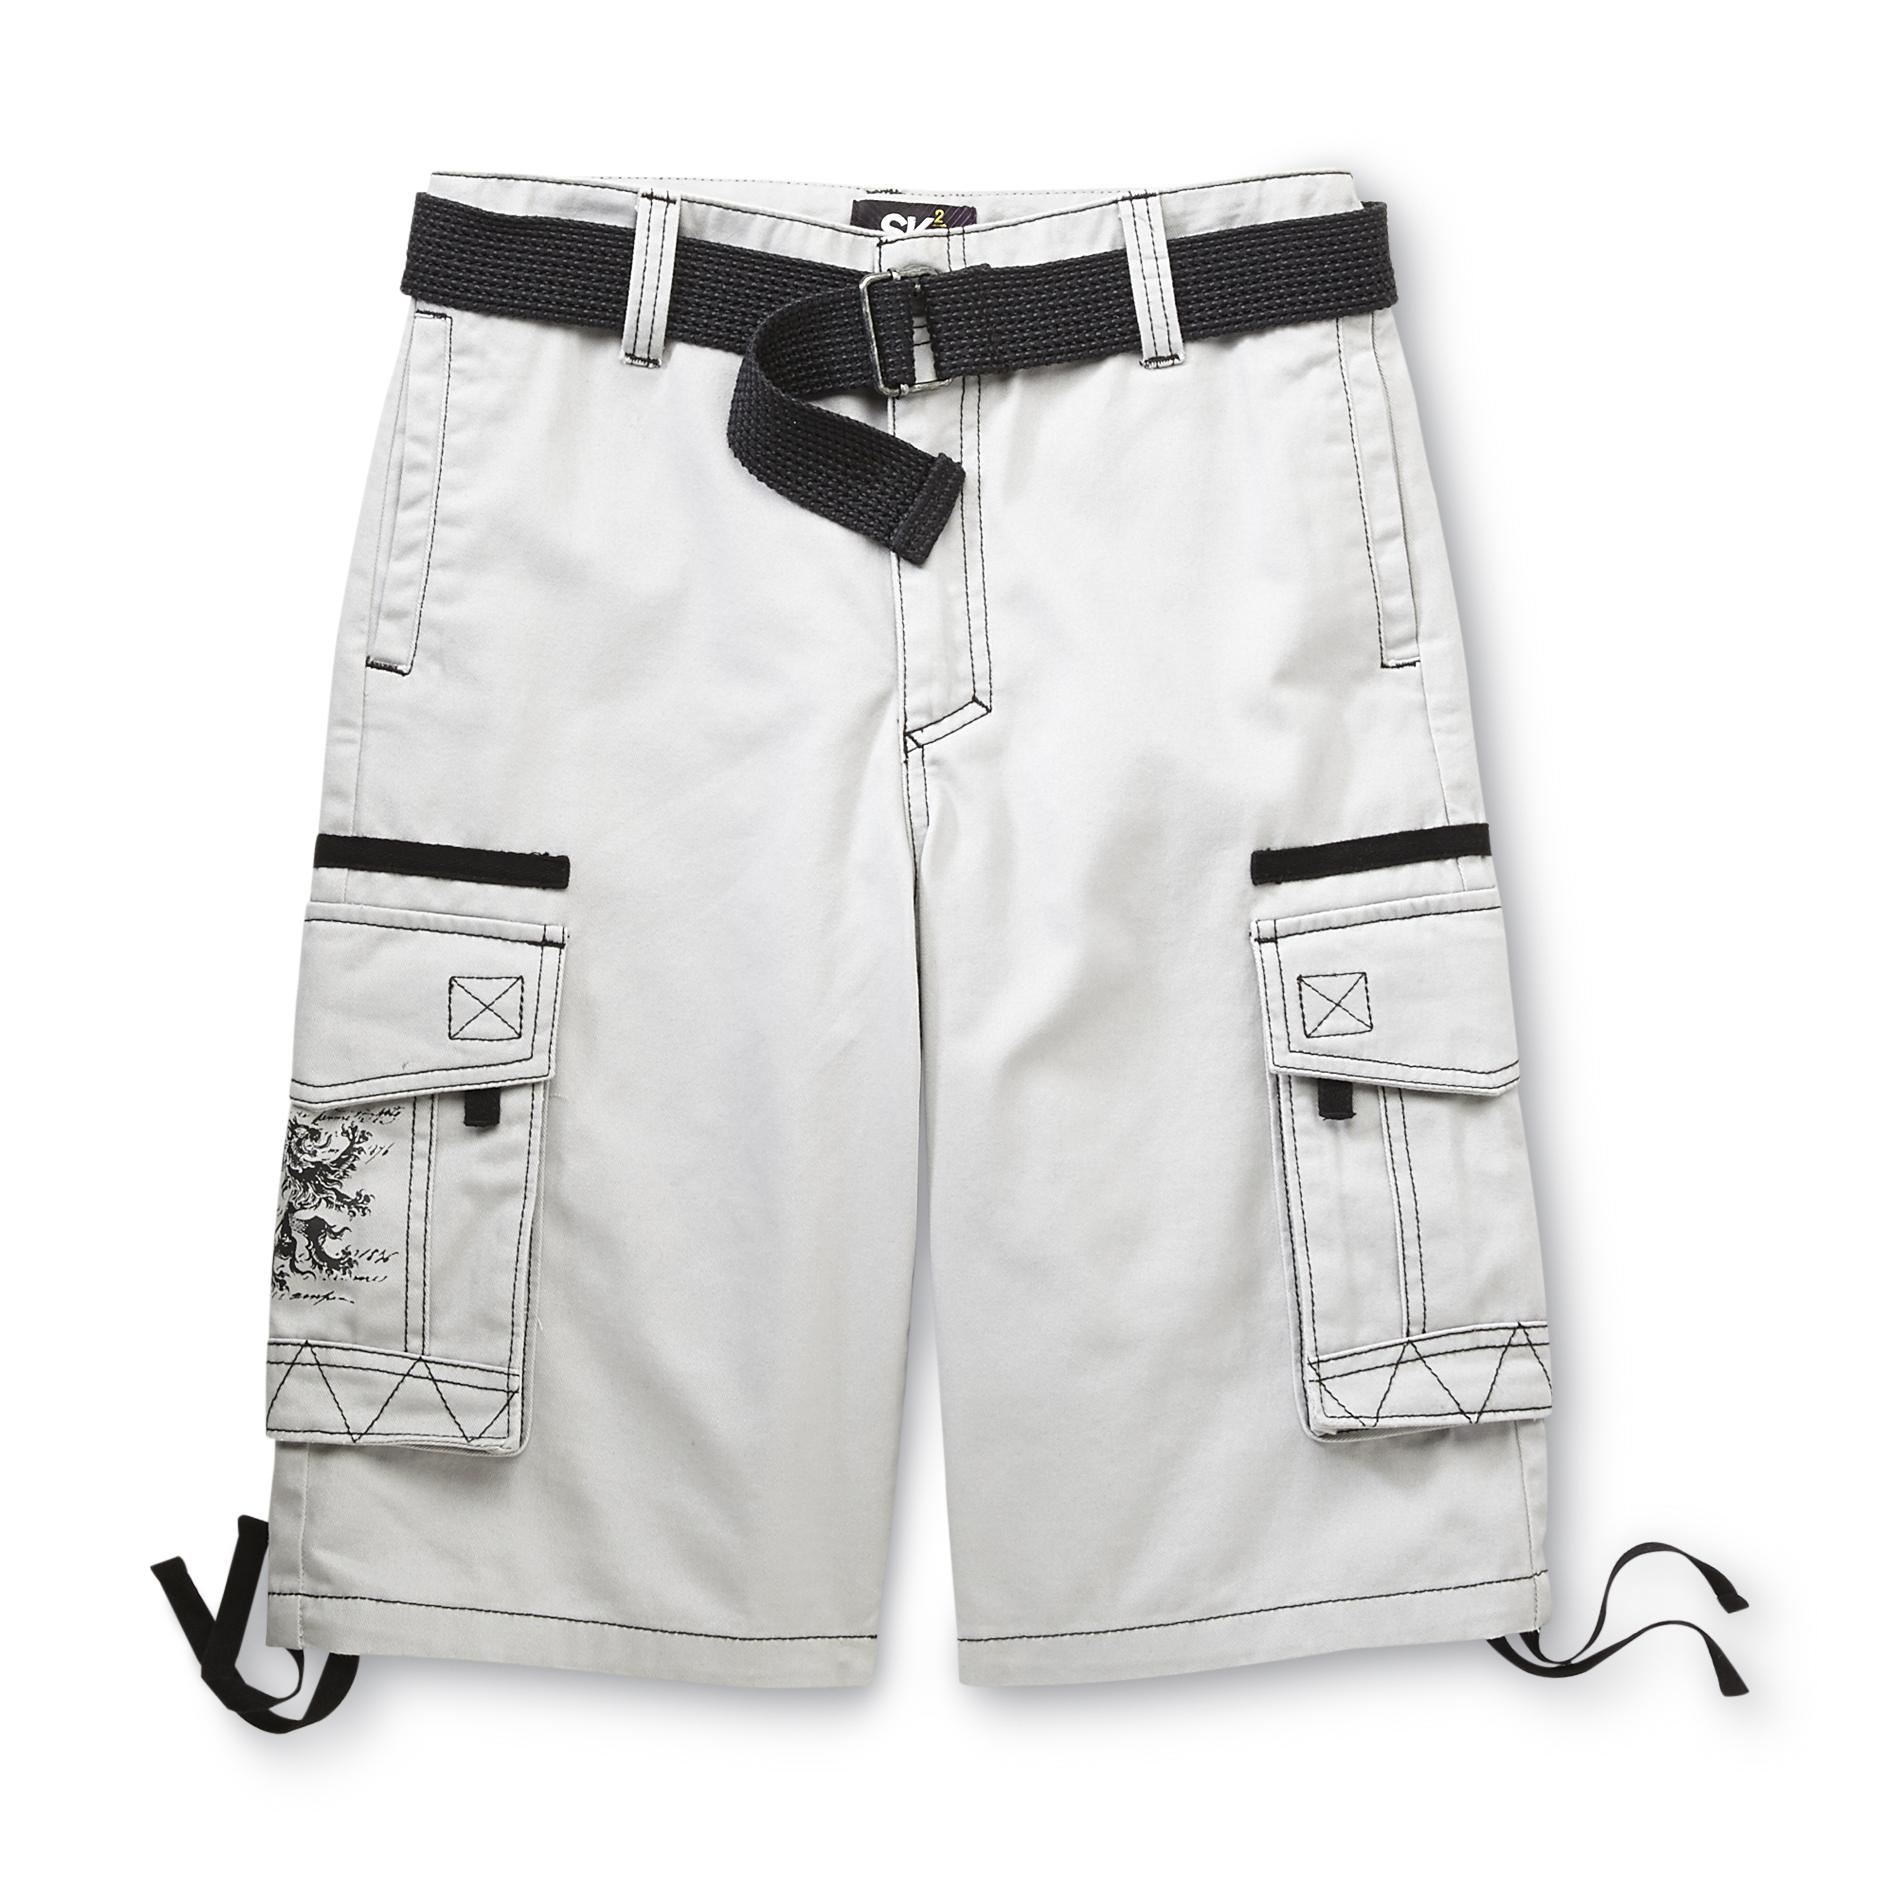 SK2 Boy's Belted Cargo Shorts - Dragon at Kmart.com